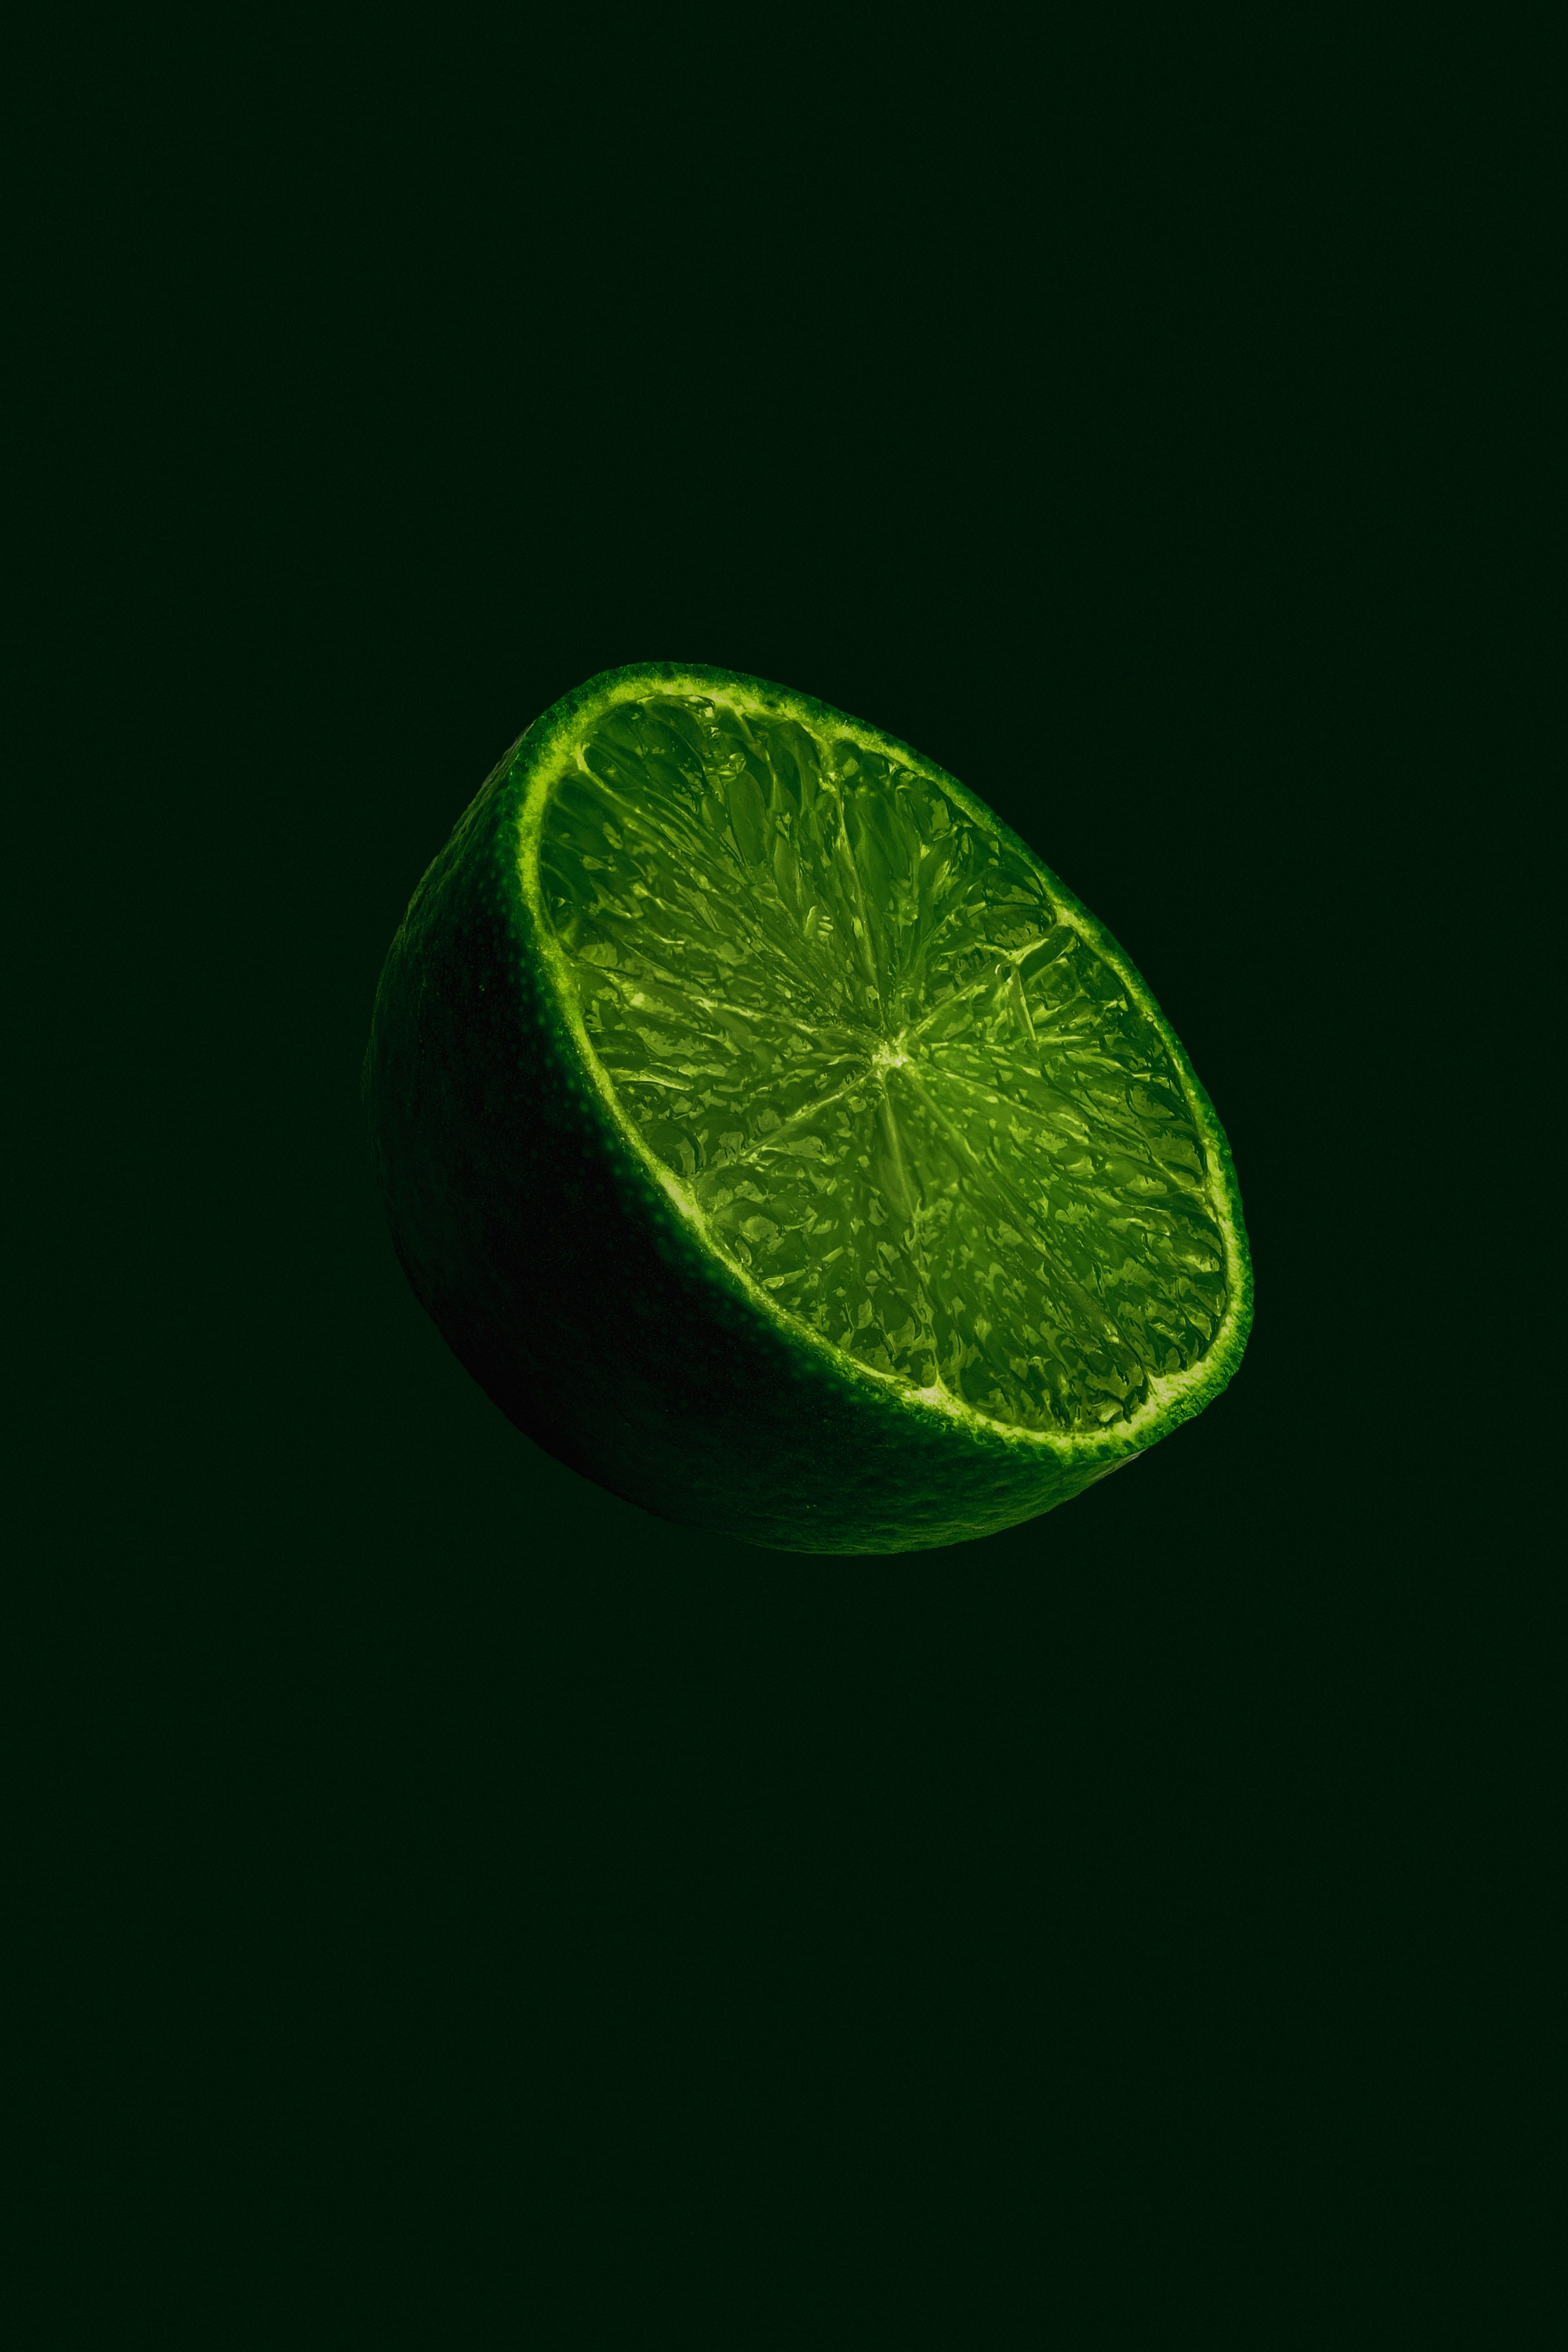 145342 download wallpaper Lime, Macro, Fruit, Citrus screensavers and pictures for free